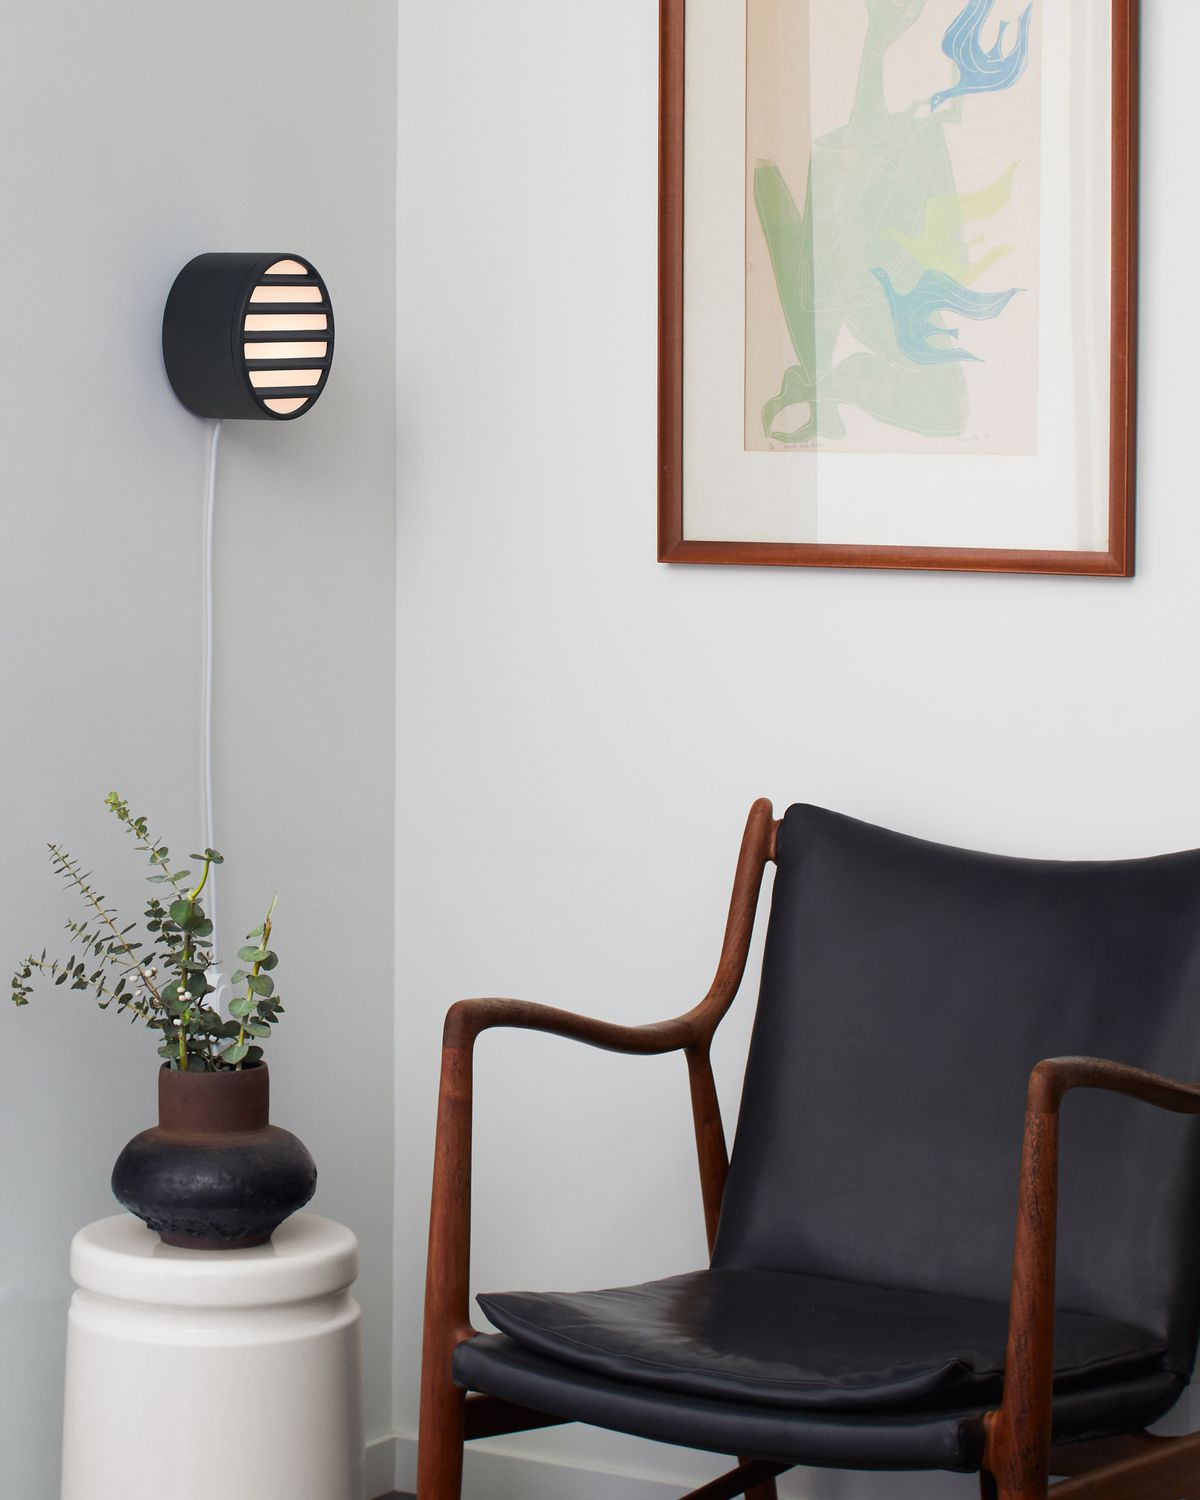 Round black sconce hanging on wall.